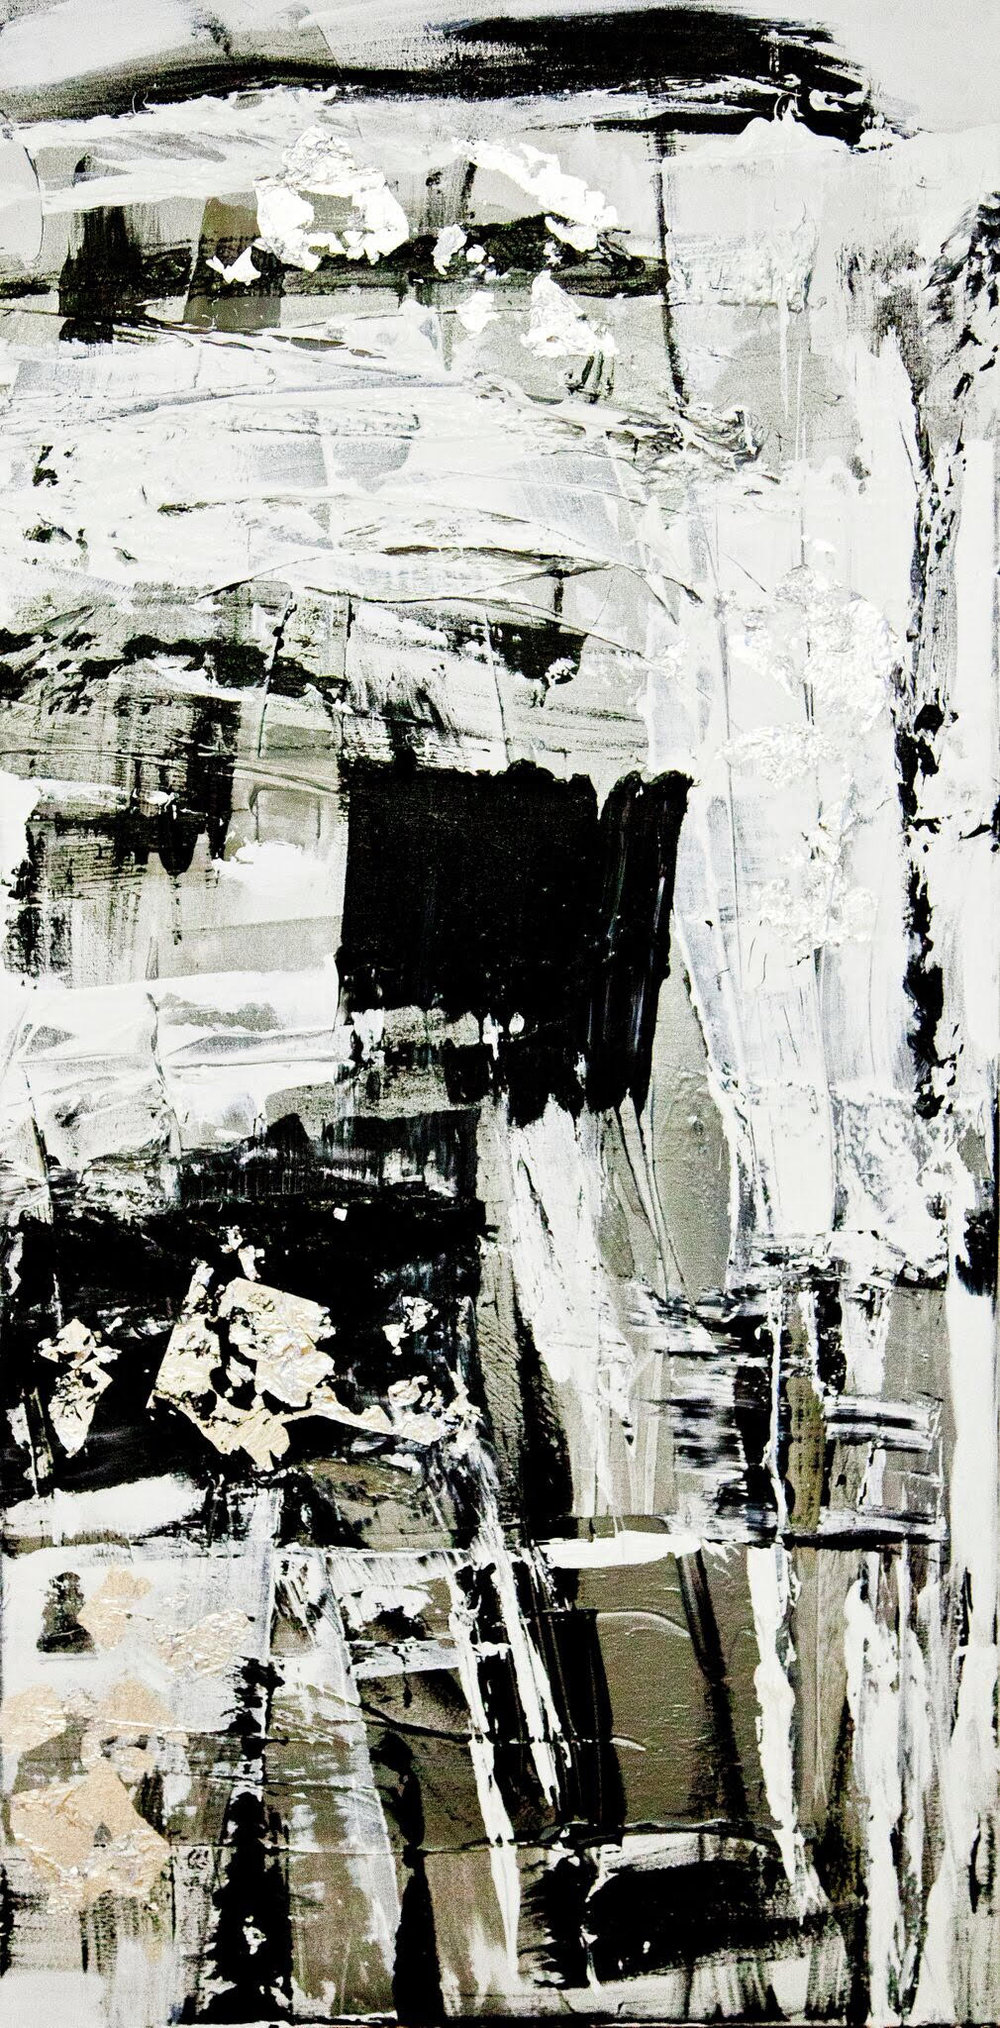 venice series / acrylic on canvas / 60 in. x 24 in.